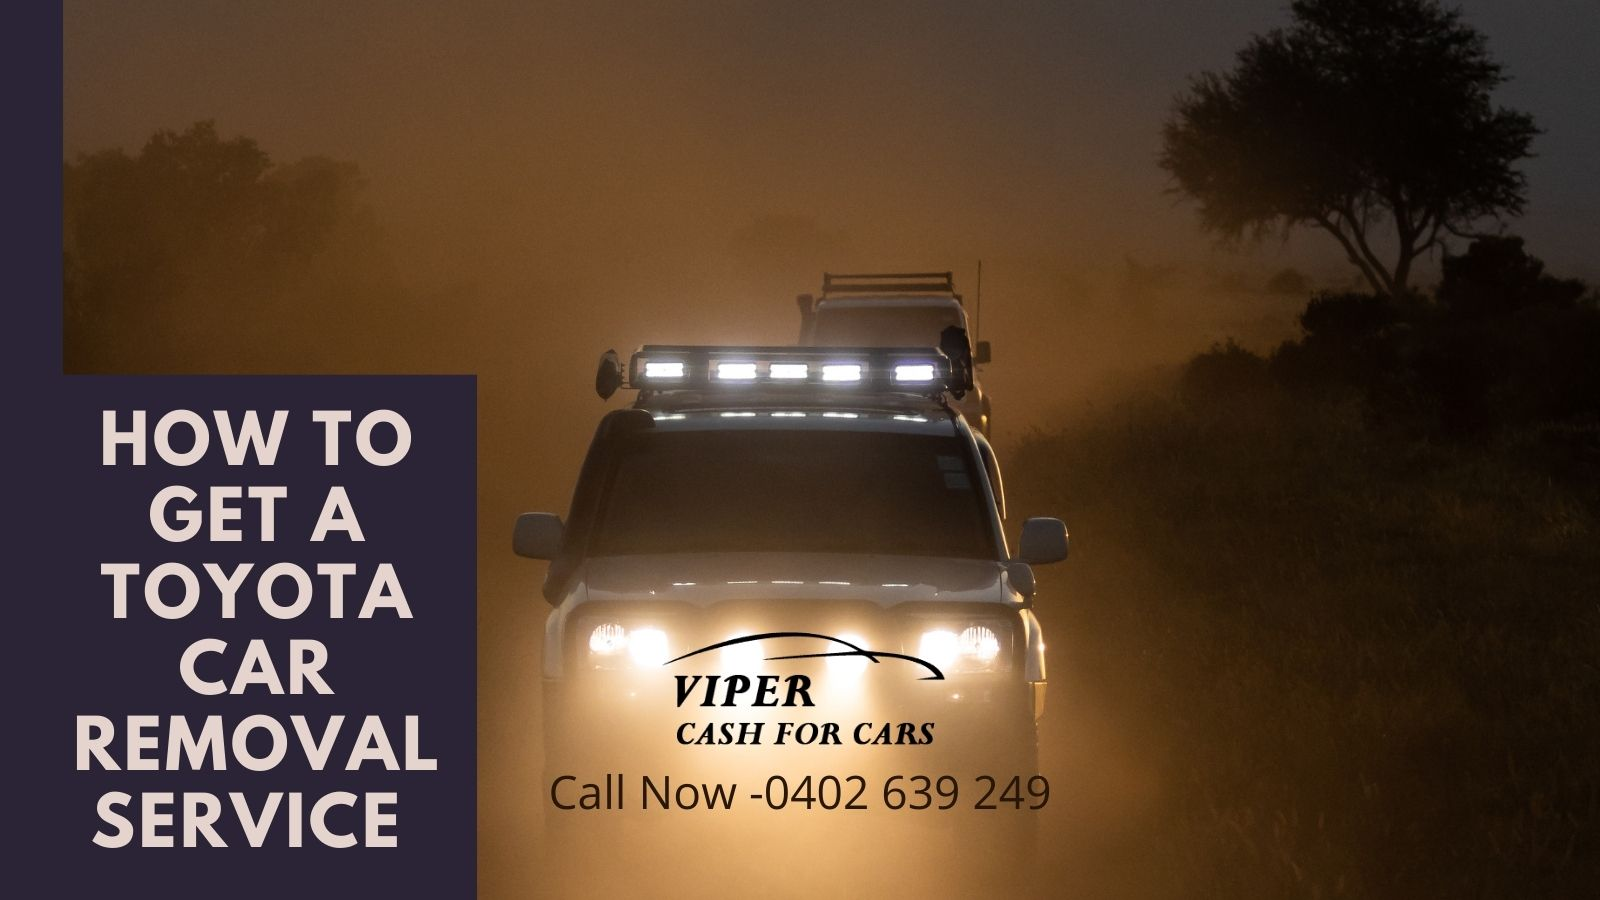 How to get a Toyota car removal service in Newcastle?